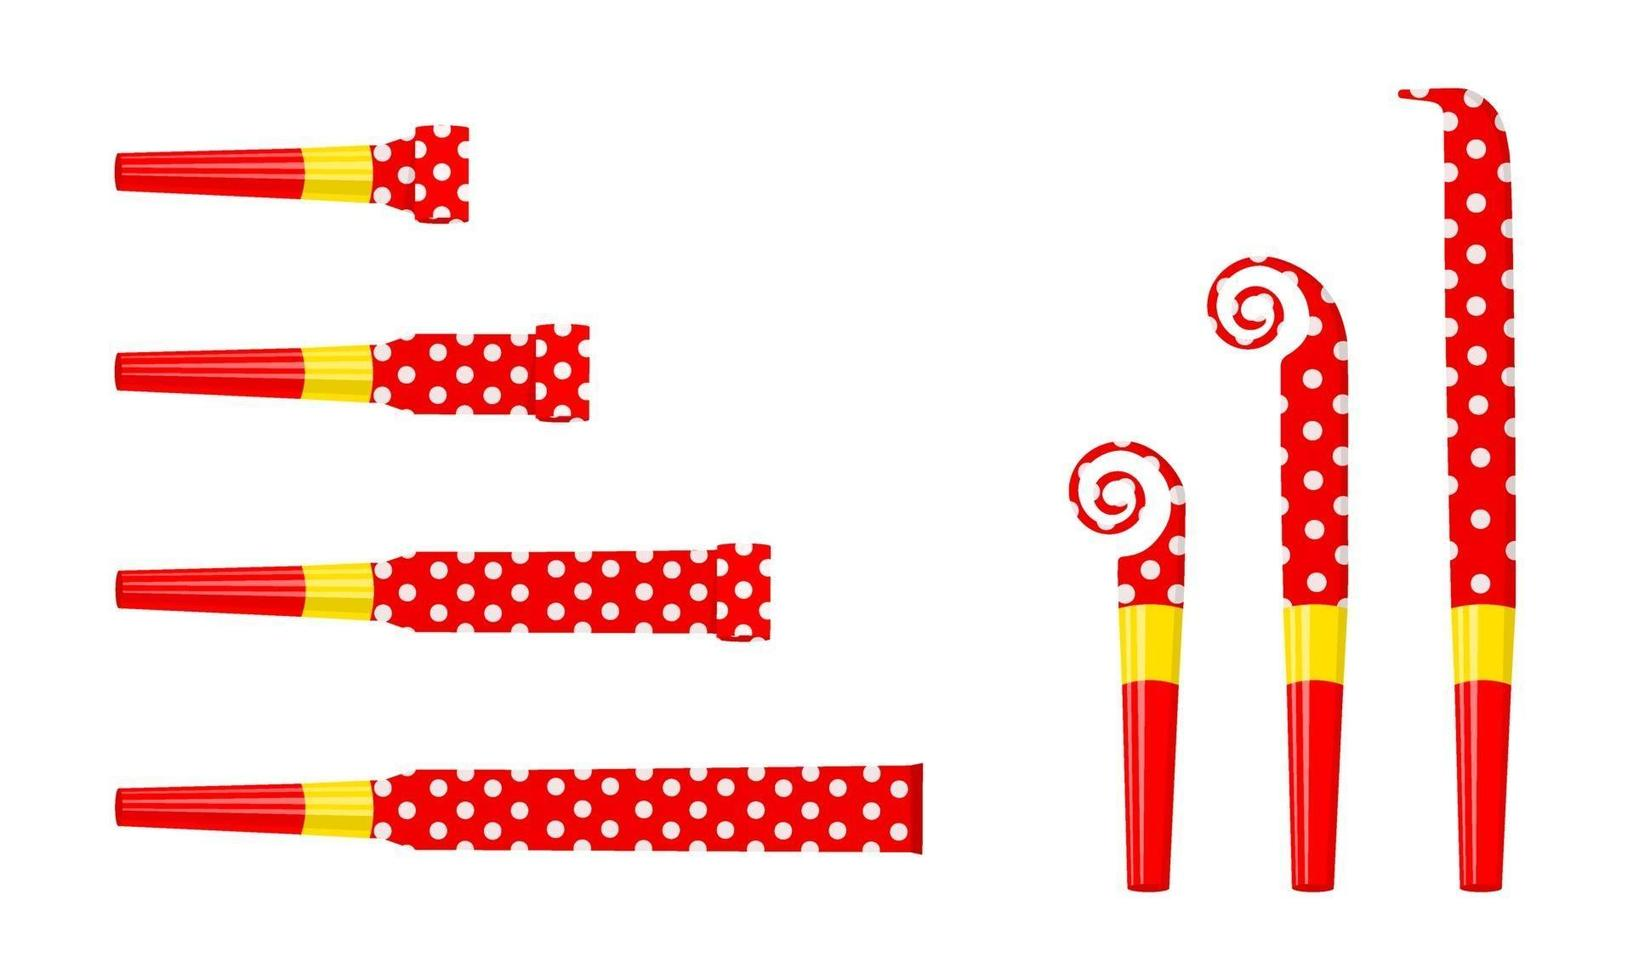 Party noise makers, blowers isolated on white background. Rolled and unrolled red polka dot sound whistles. Side and top view. Celebration concept vector